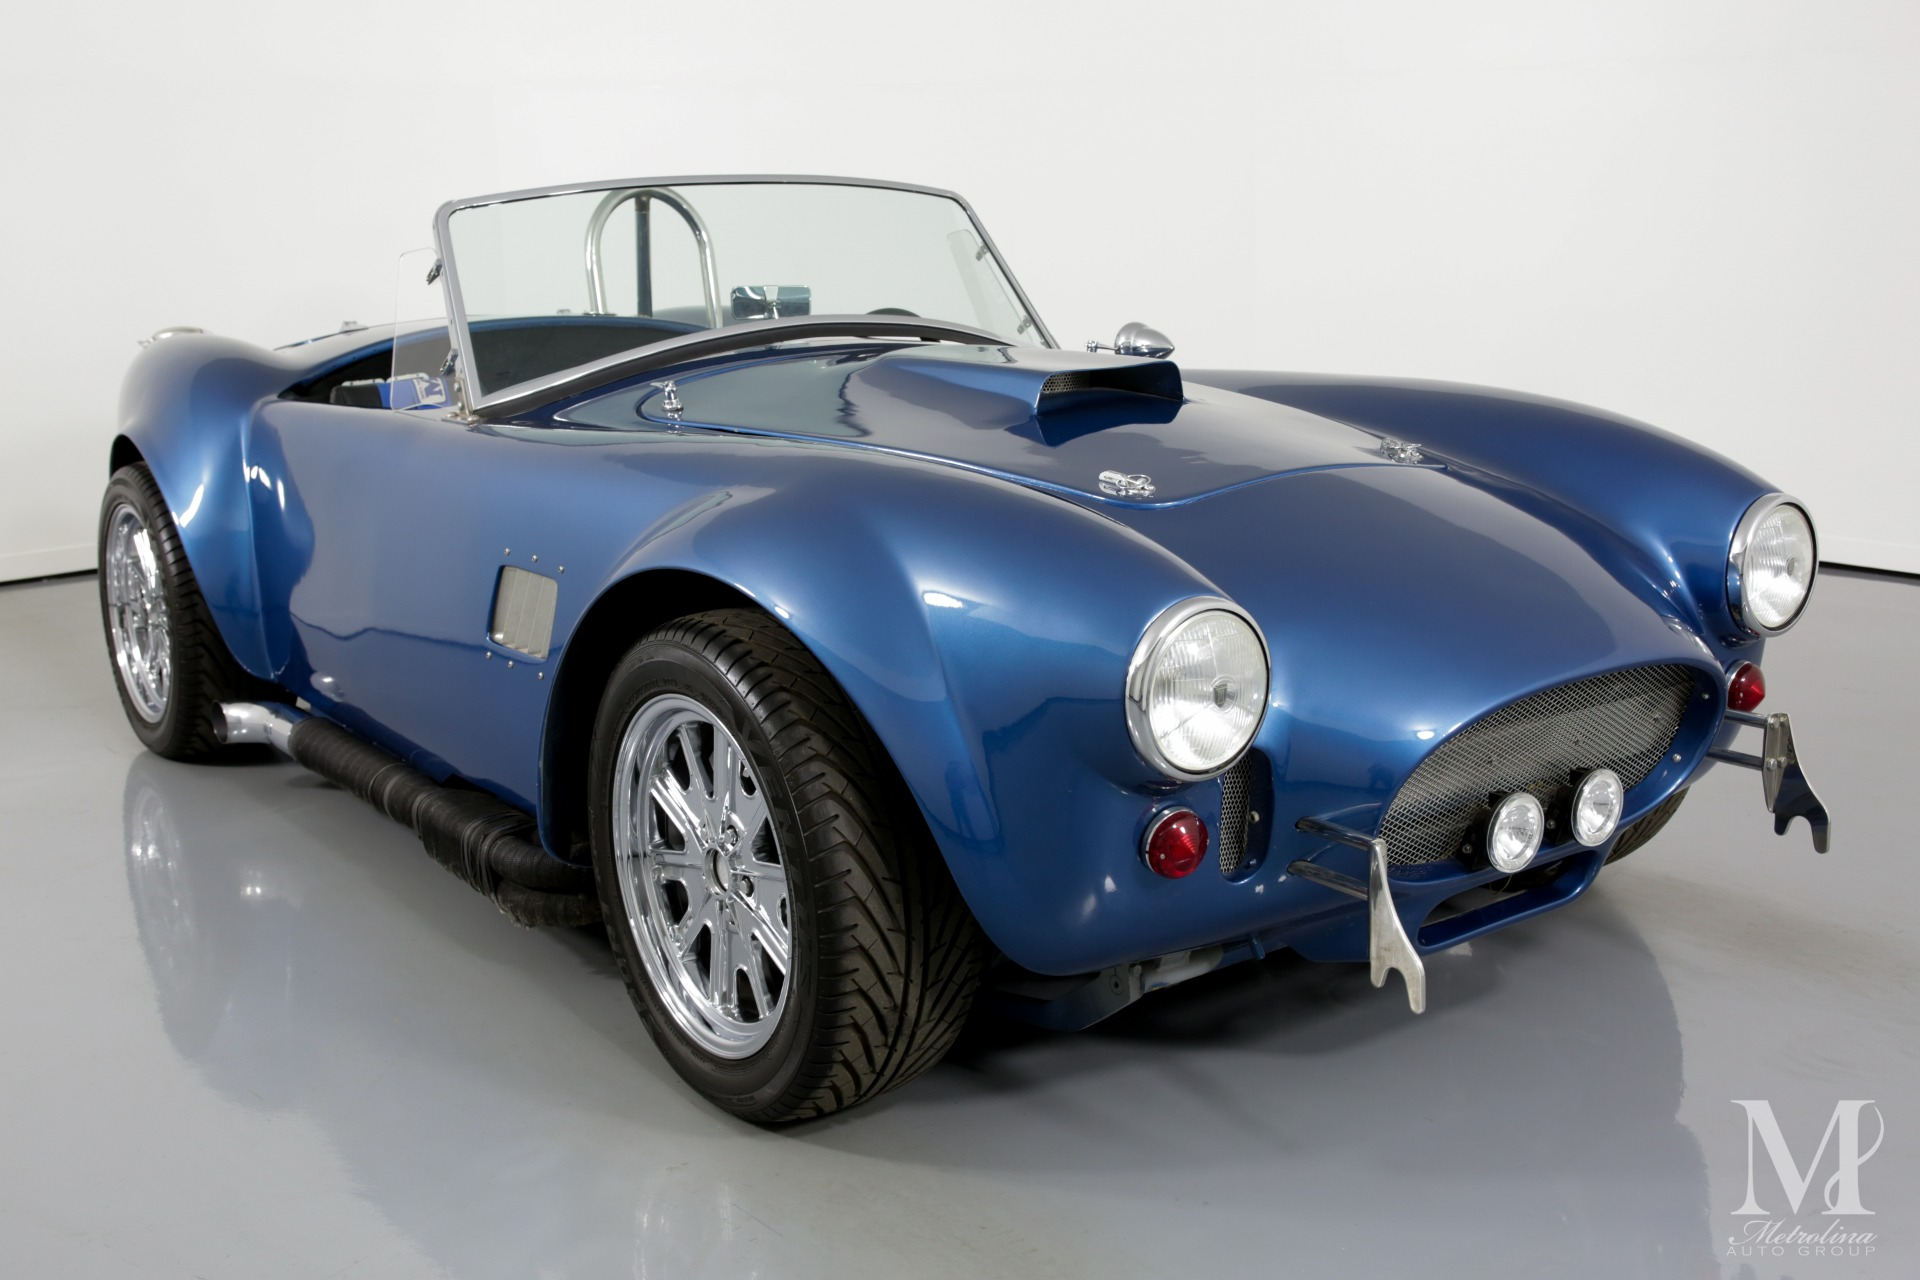 Used 1965 Shelby Cobra KIT CAR for sale Sold at Metrolina Auto Group in Charlotte NC 28217 - 2